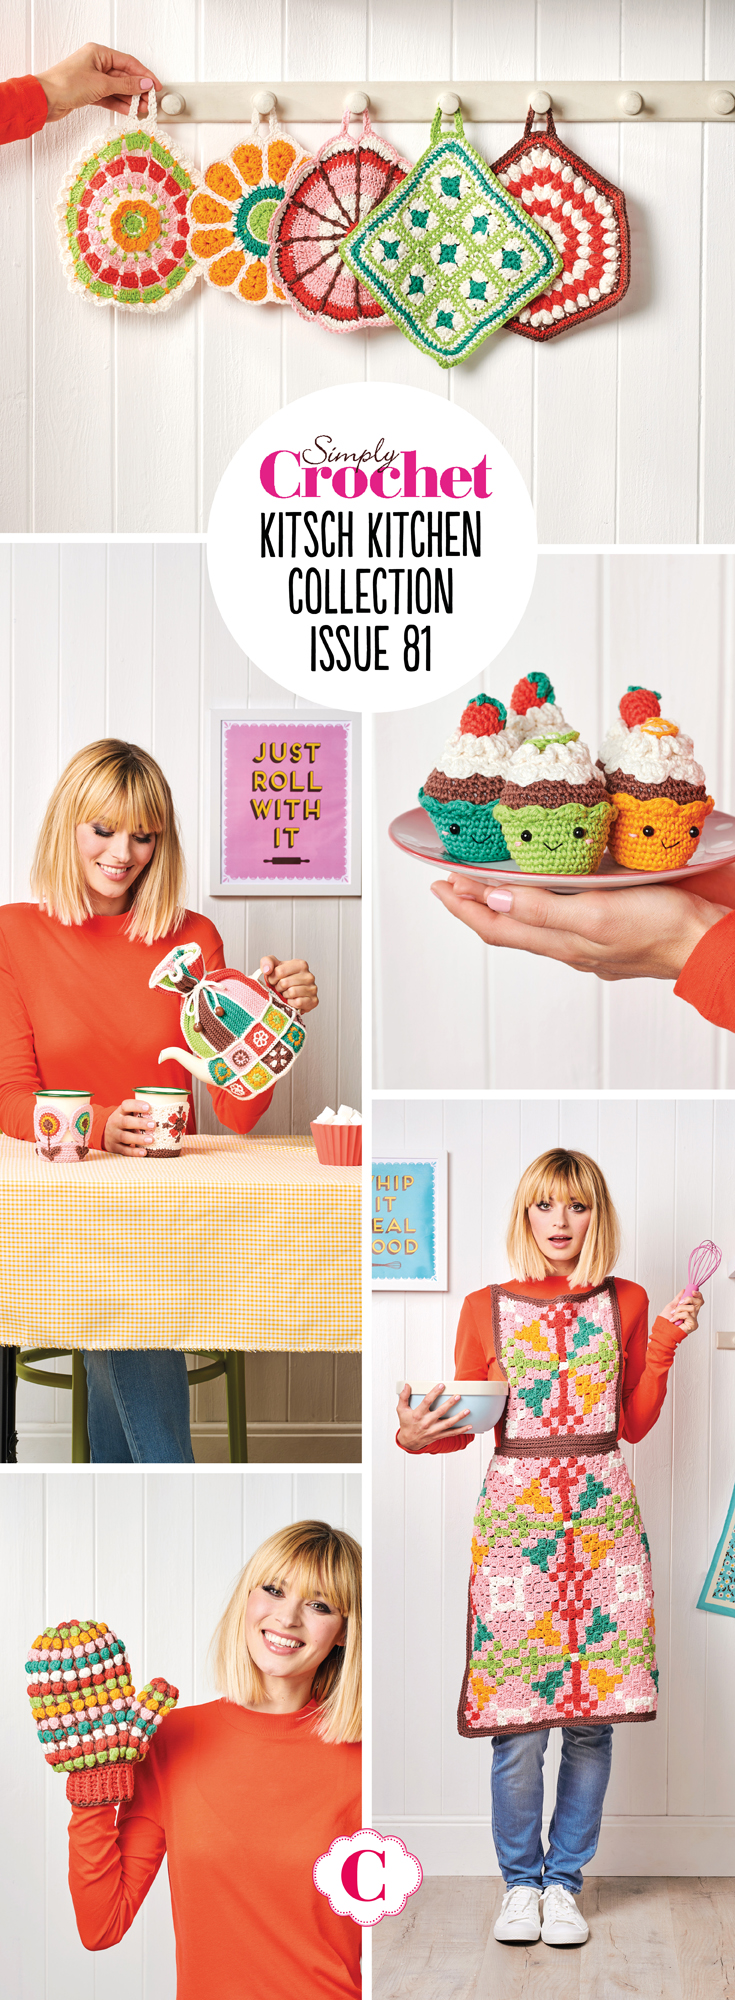 In issue 81 we're going all kitsch with our retro inspired Kitchen collection. There's six fab designs to choose from - apron, oven glove, pot holders, teapot cosy, cup sleeves and amigurumi cupcakes. All the designs are made in durable and strong Paintbox Yarns Cotton dk, so although they may look retro, they'll last for years and years to come!